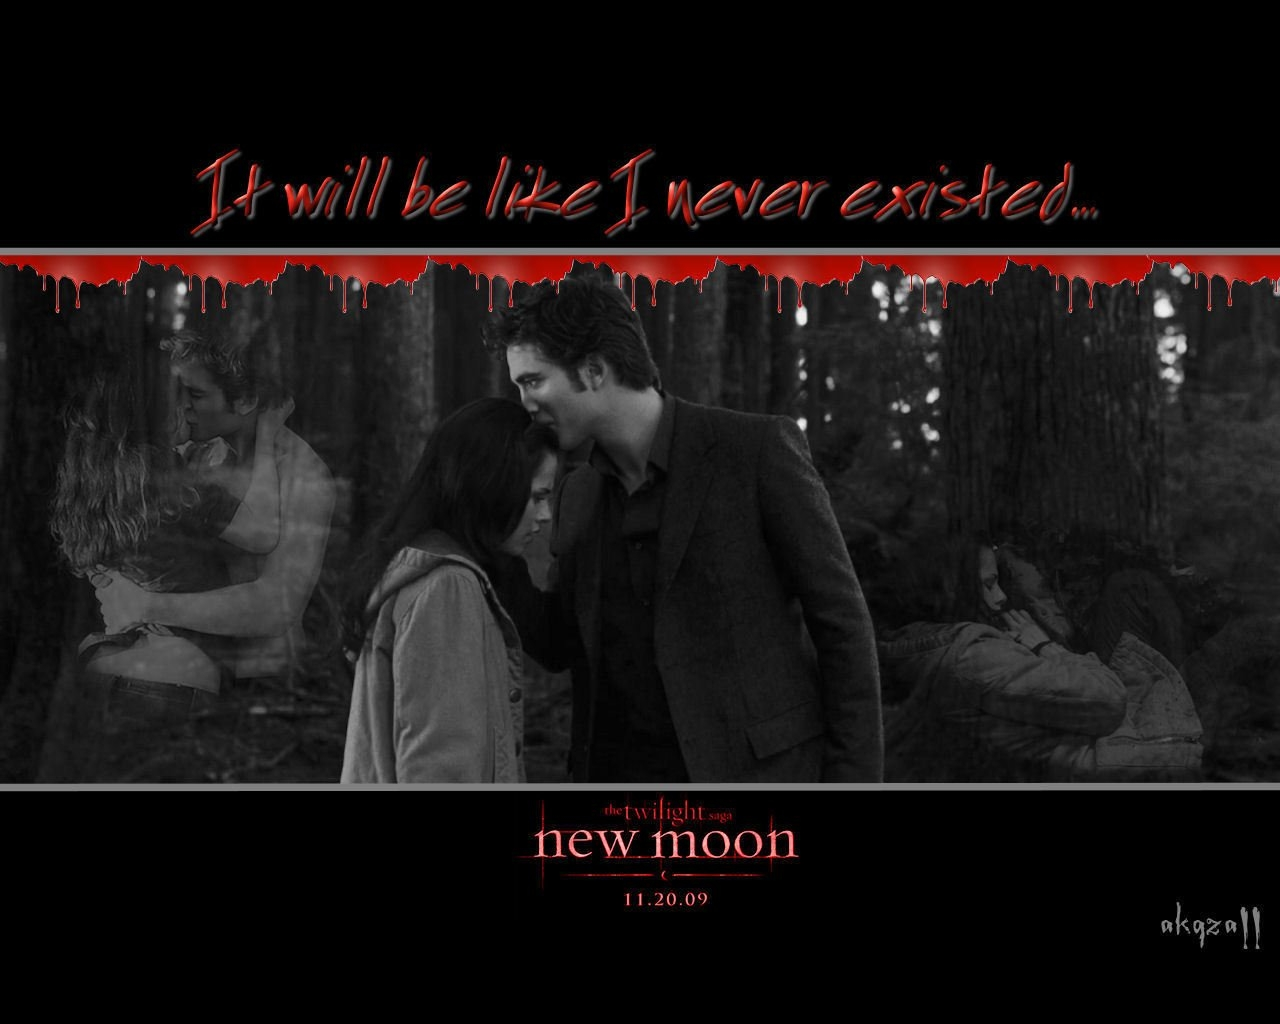 Never-existed-twilight-series-6522397-1280-1024 - сумреки обои